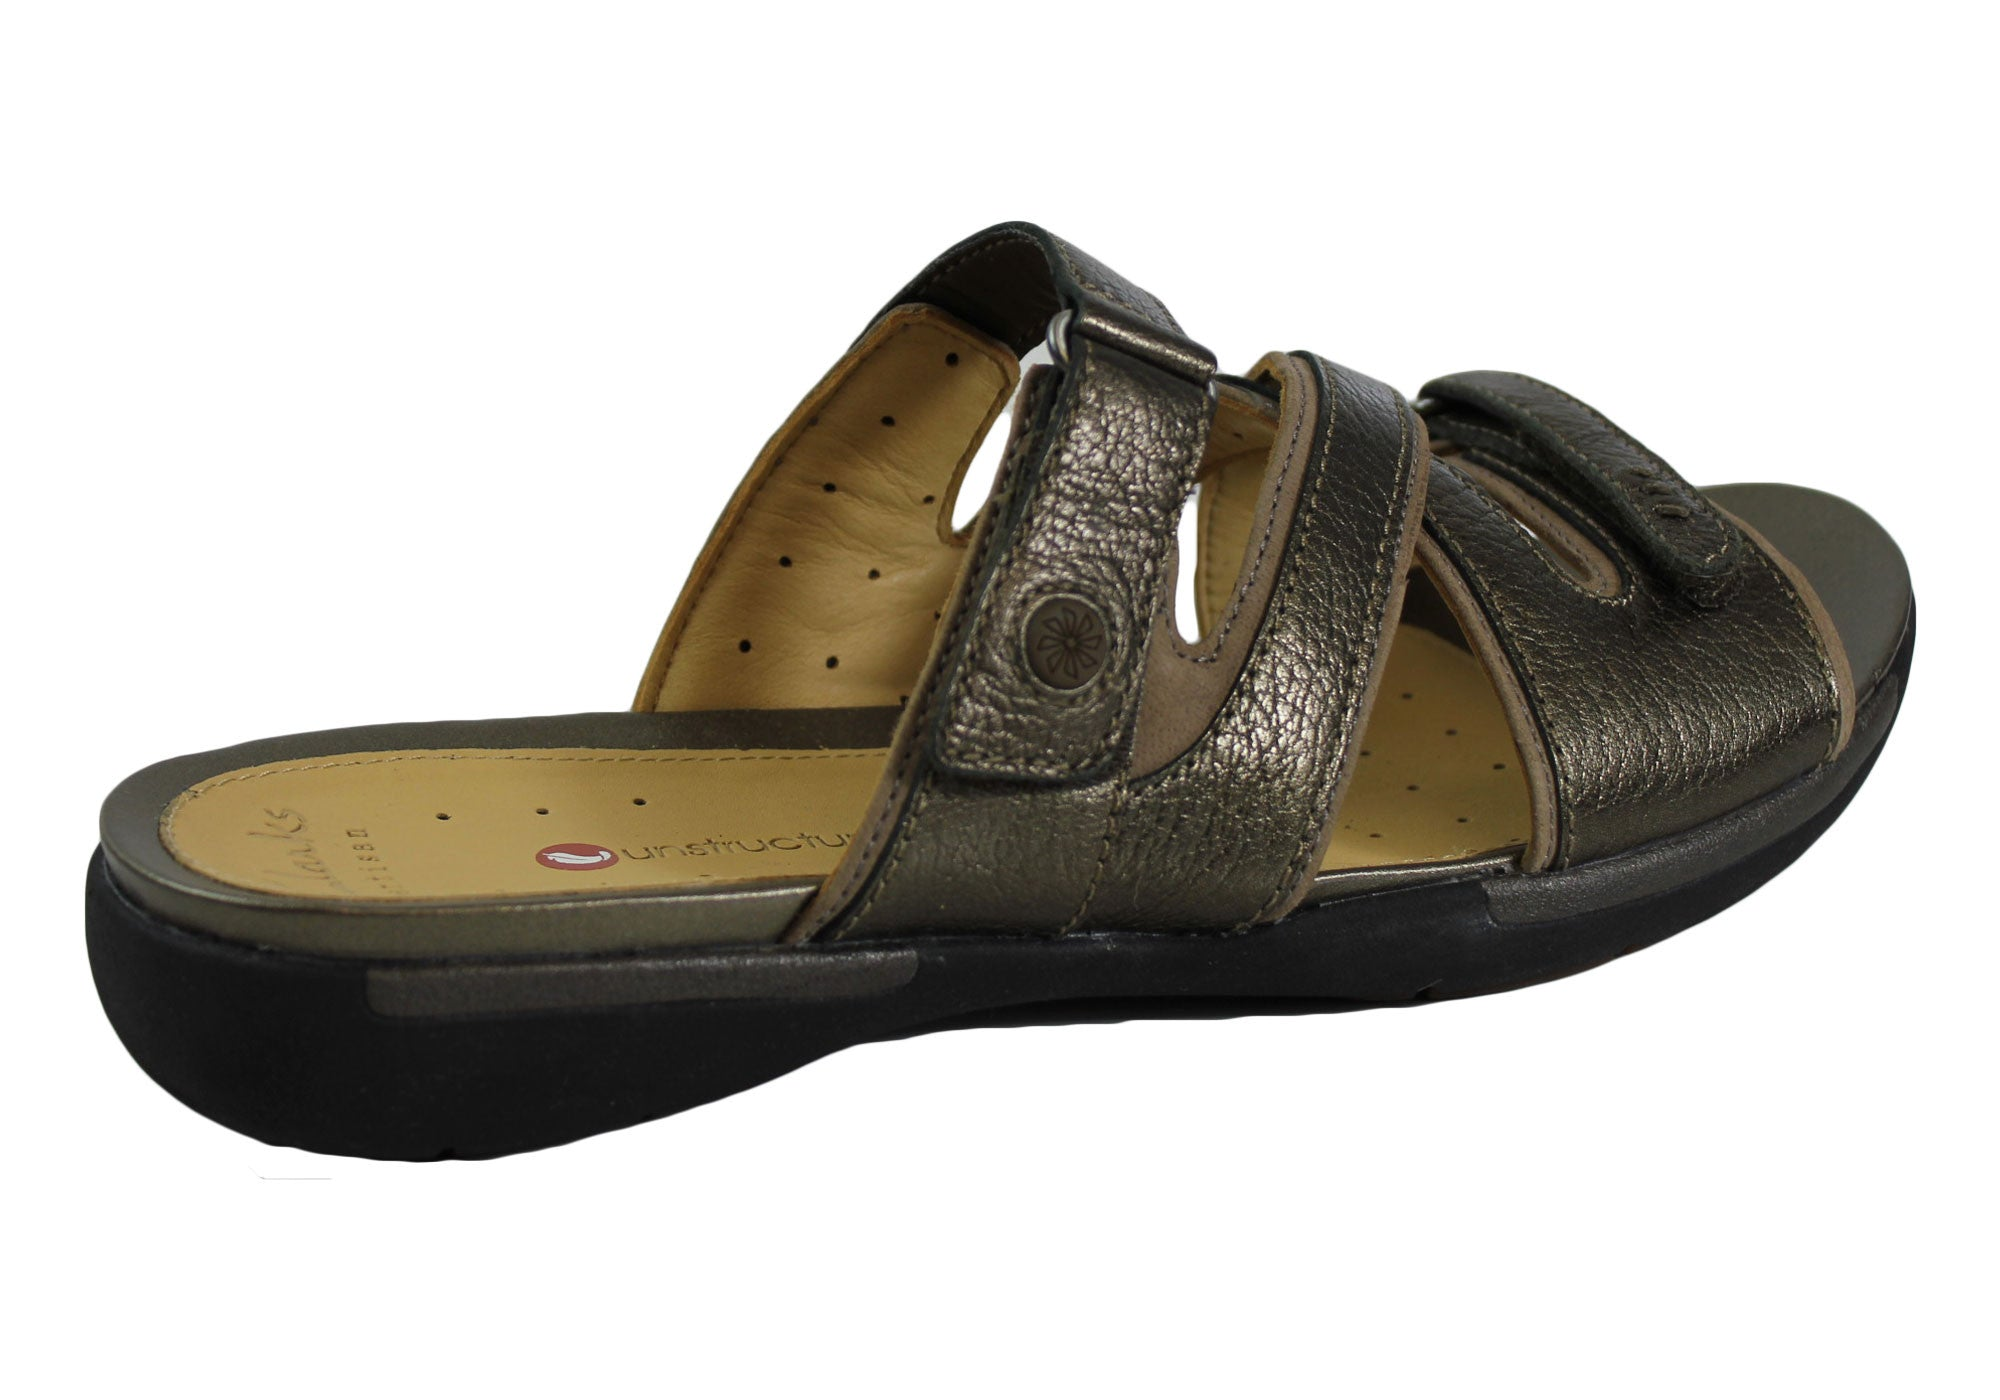 Clarks Un Verlee Womens Leather Slides/Sandals